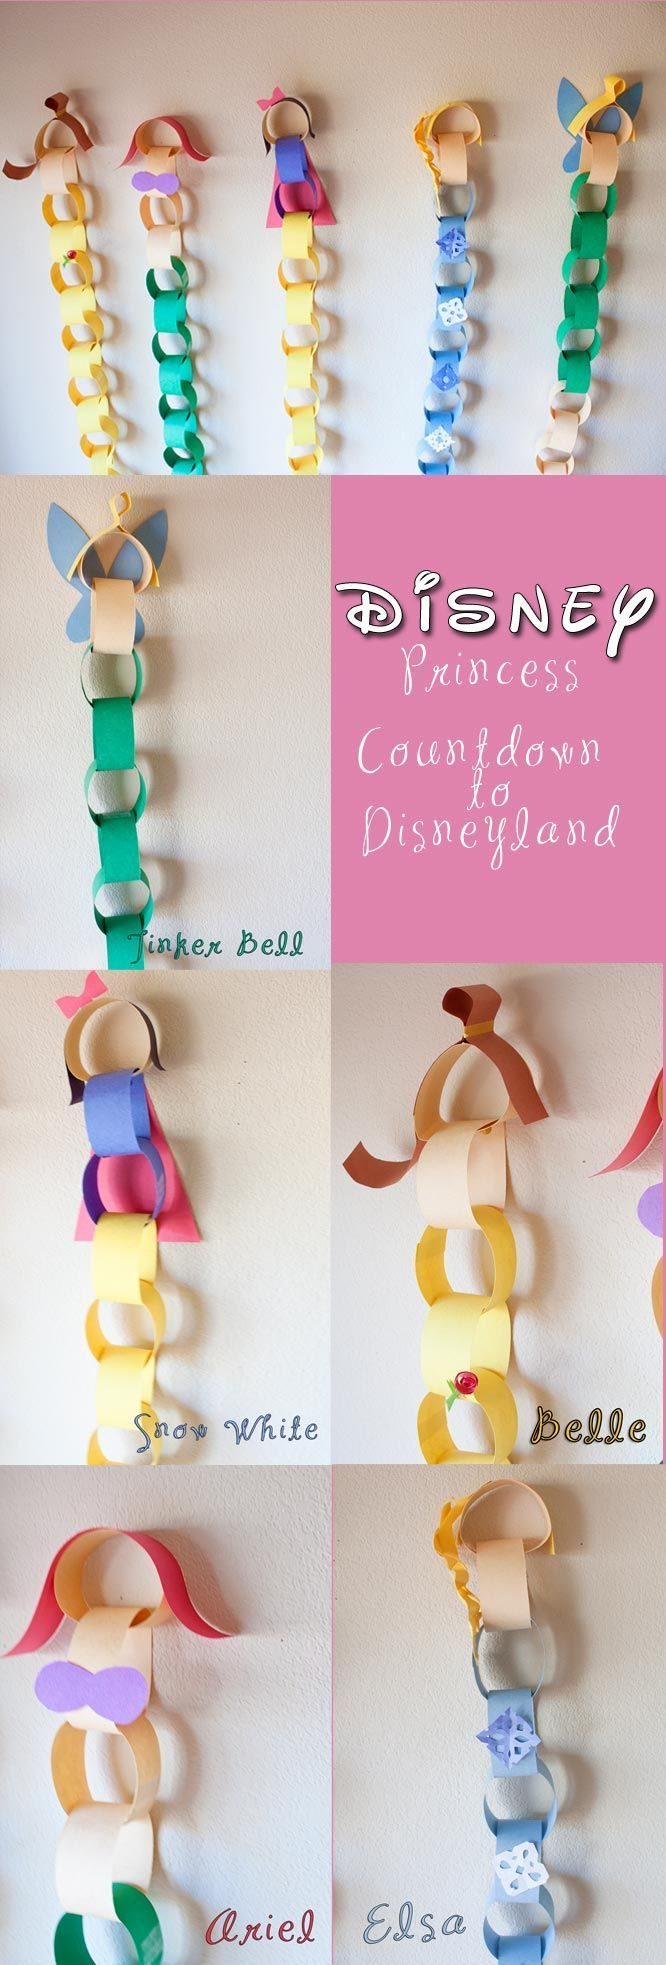 Disneyland Countdown with the Disney Princesses! How cute! | Disney Craft | Disney DIY | Disney Travel Tip |